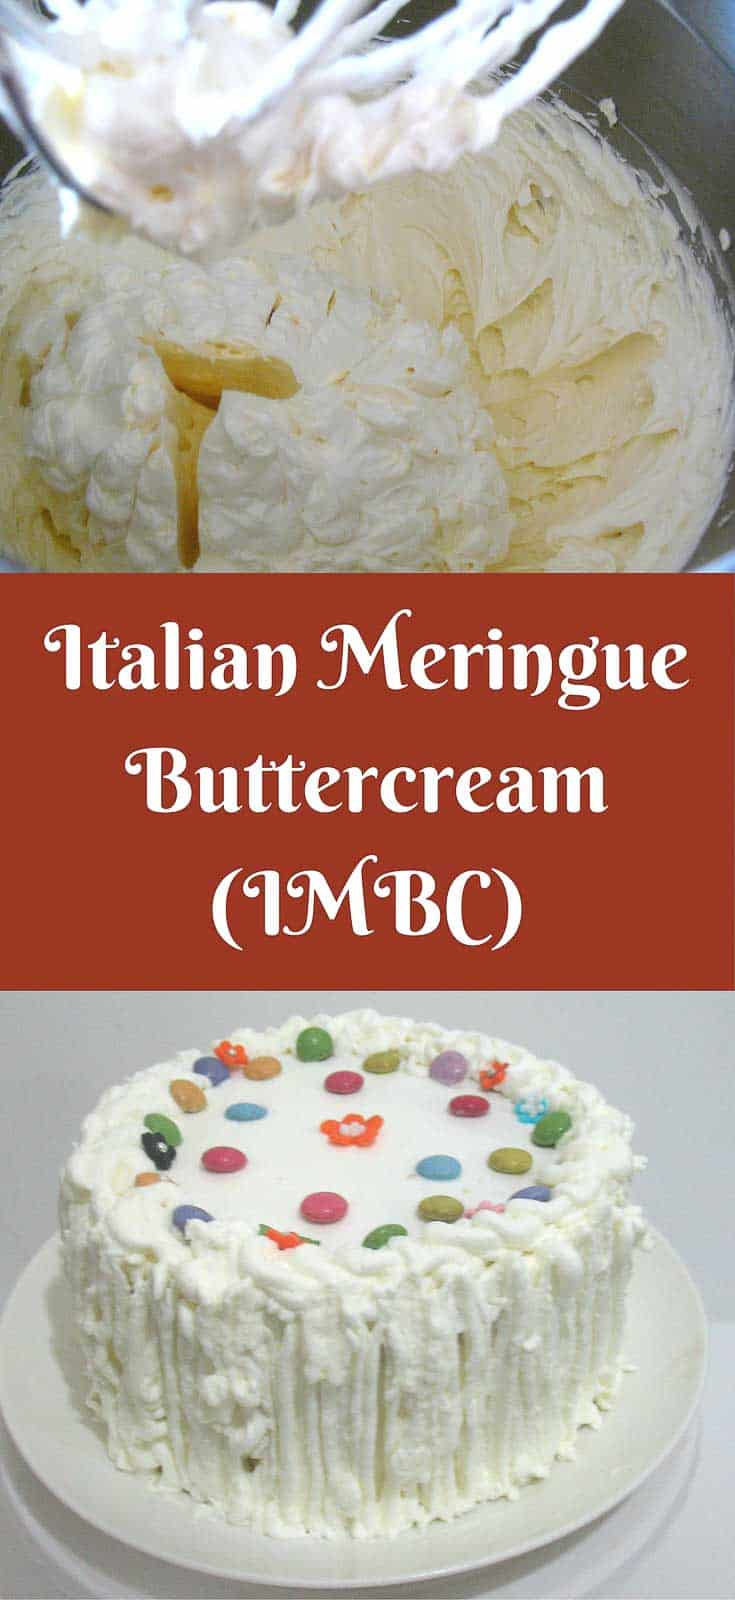 Italian meringue buttercream is made with egg white and boiled sugar syrup instead of powder sugar. So it's usually less sweet; more creamy and has a velvet like silky smooth feel on the tongue. A bit more complicated than making Swiss Meringue but the stability of the meringue is much better and last fluffy longer.